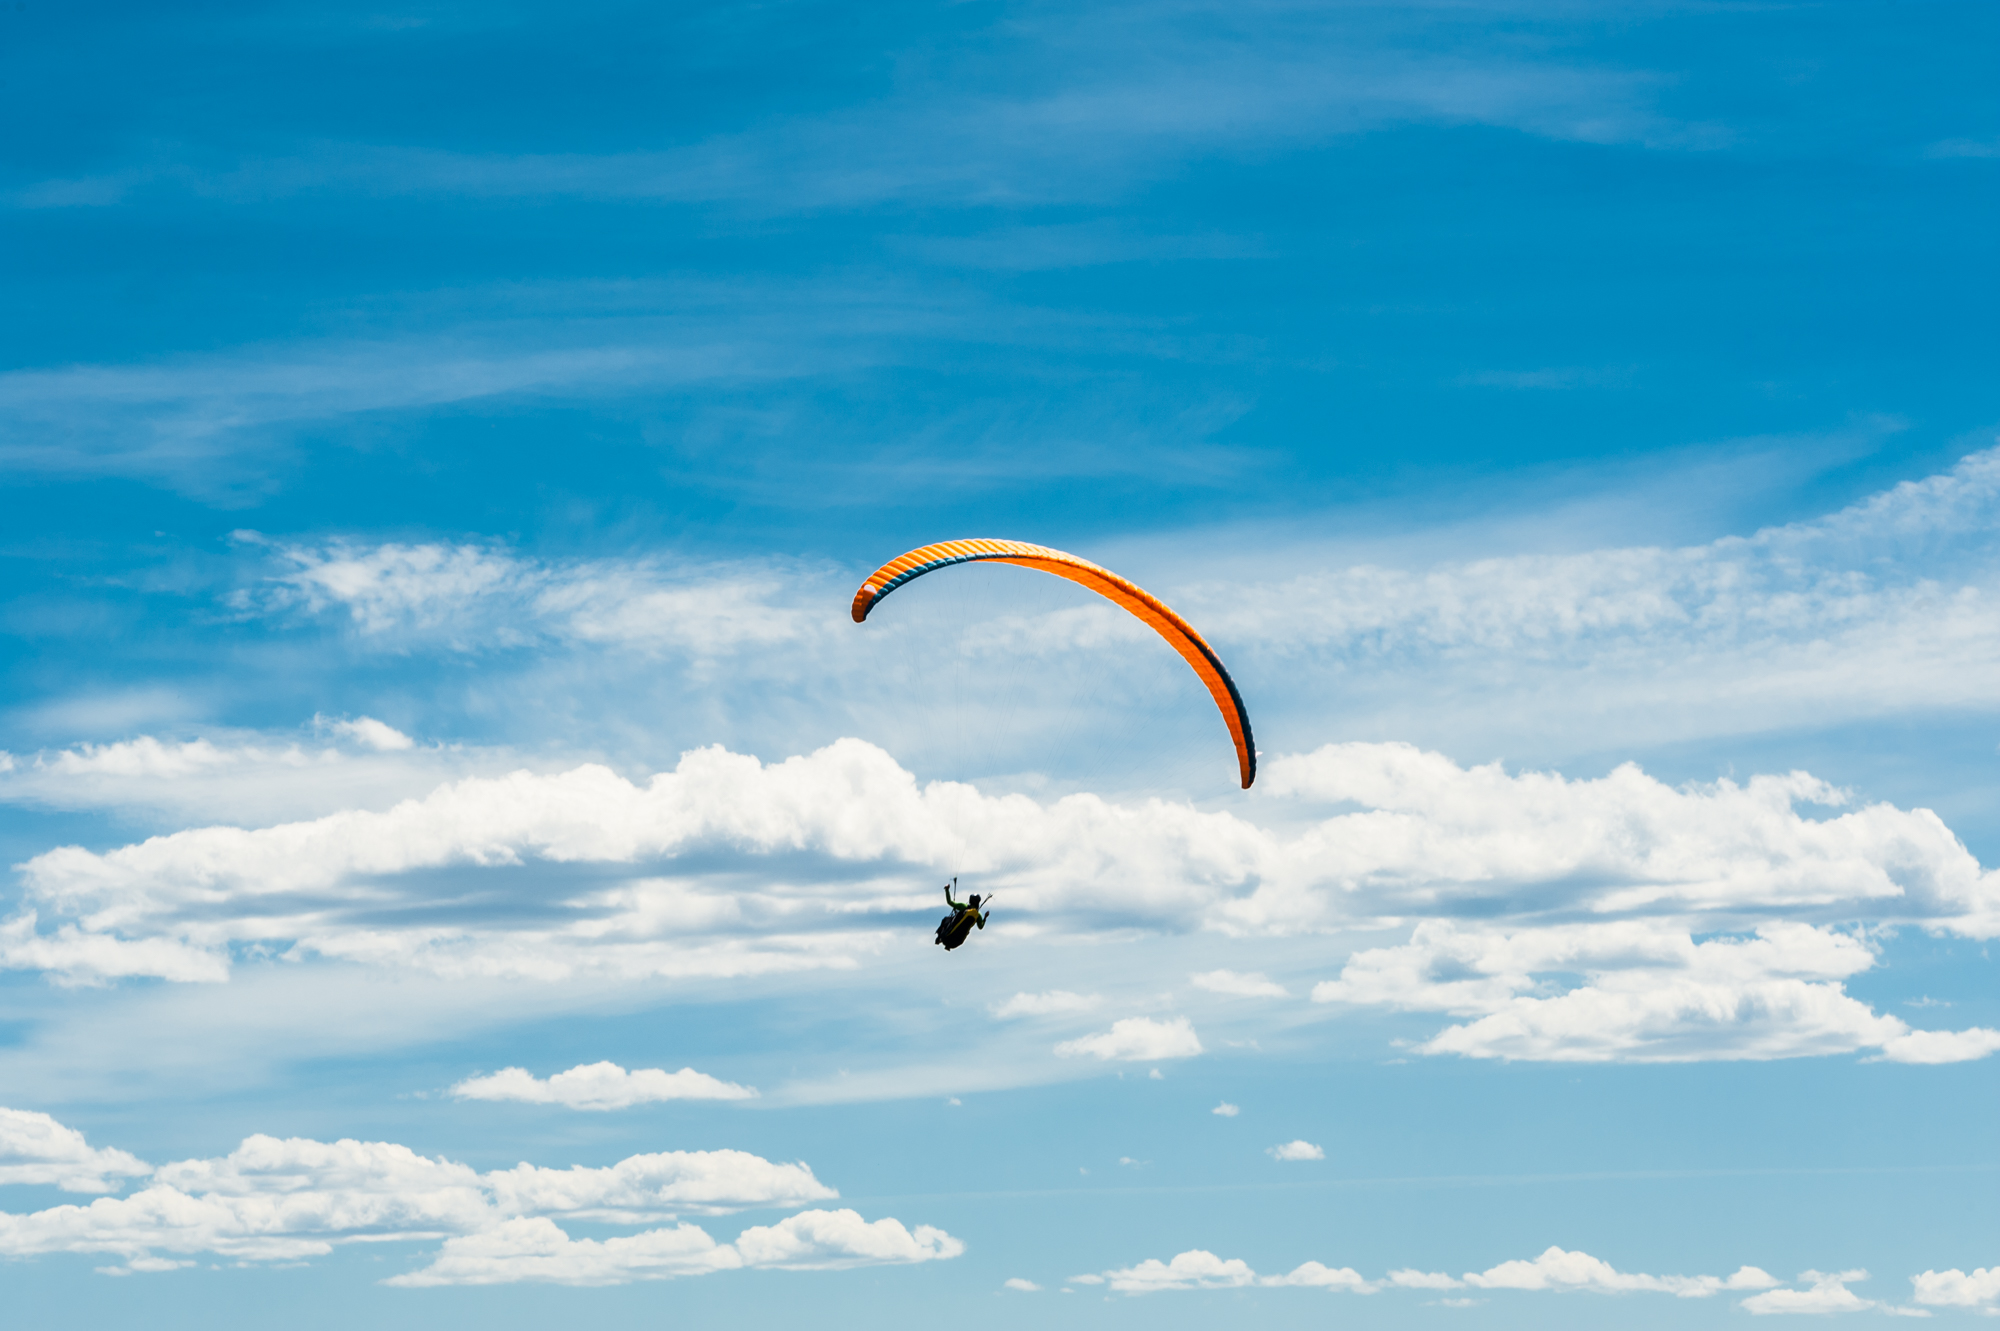 Full size lightbox of Paraglide Canada image 1